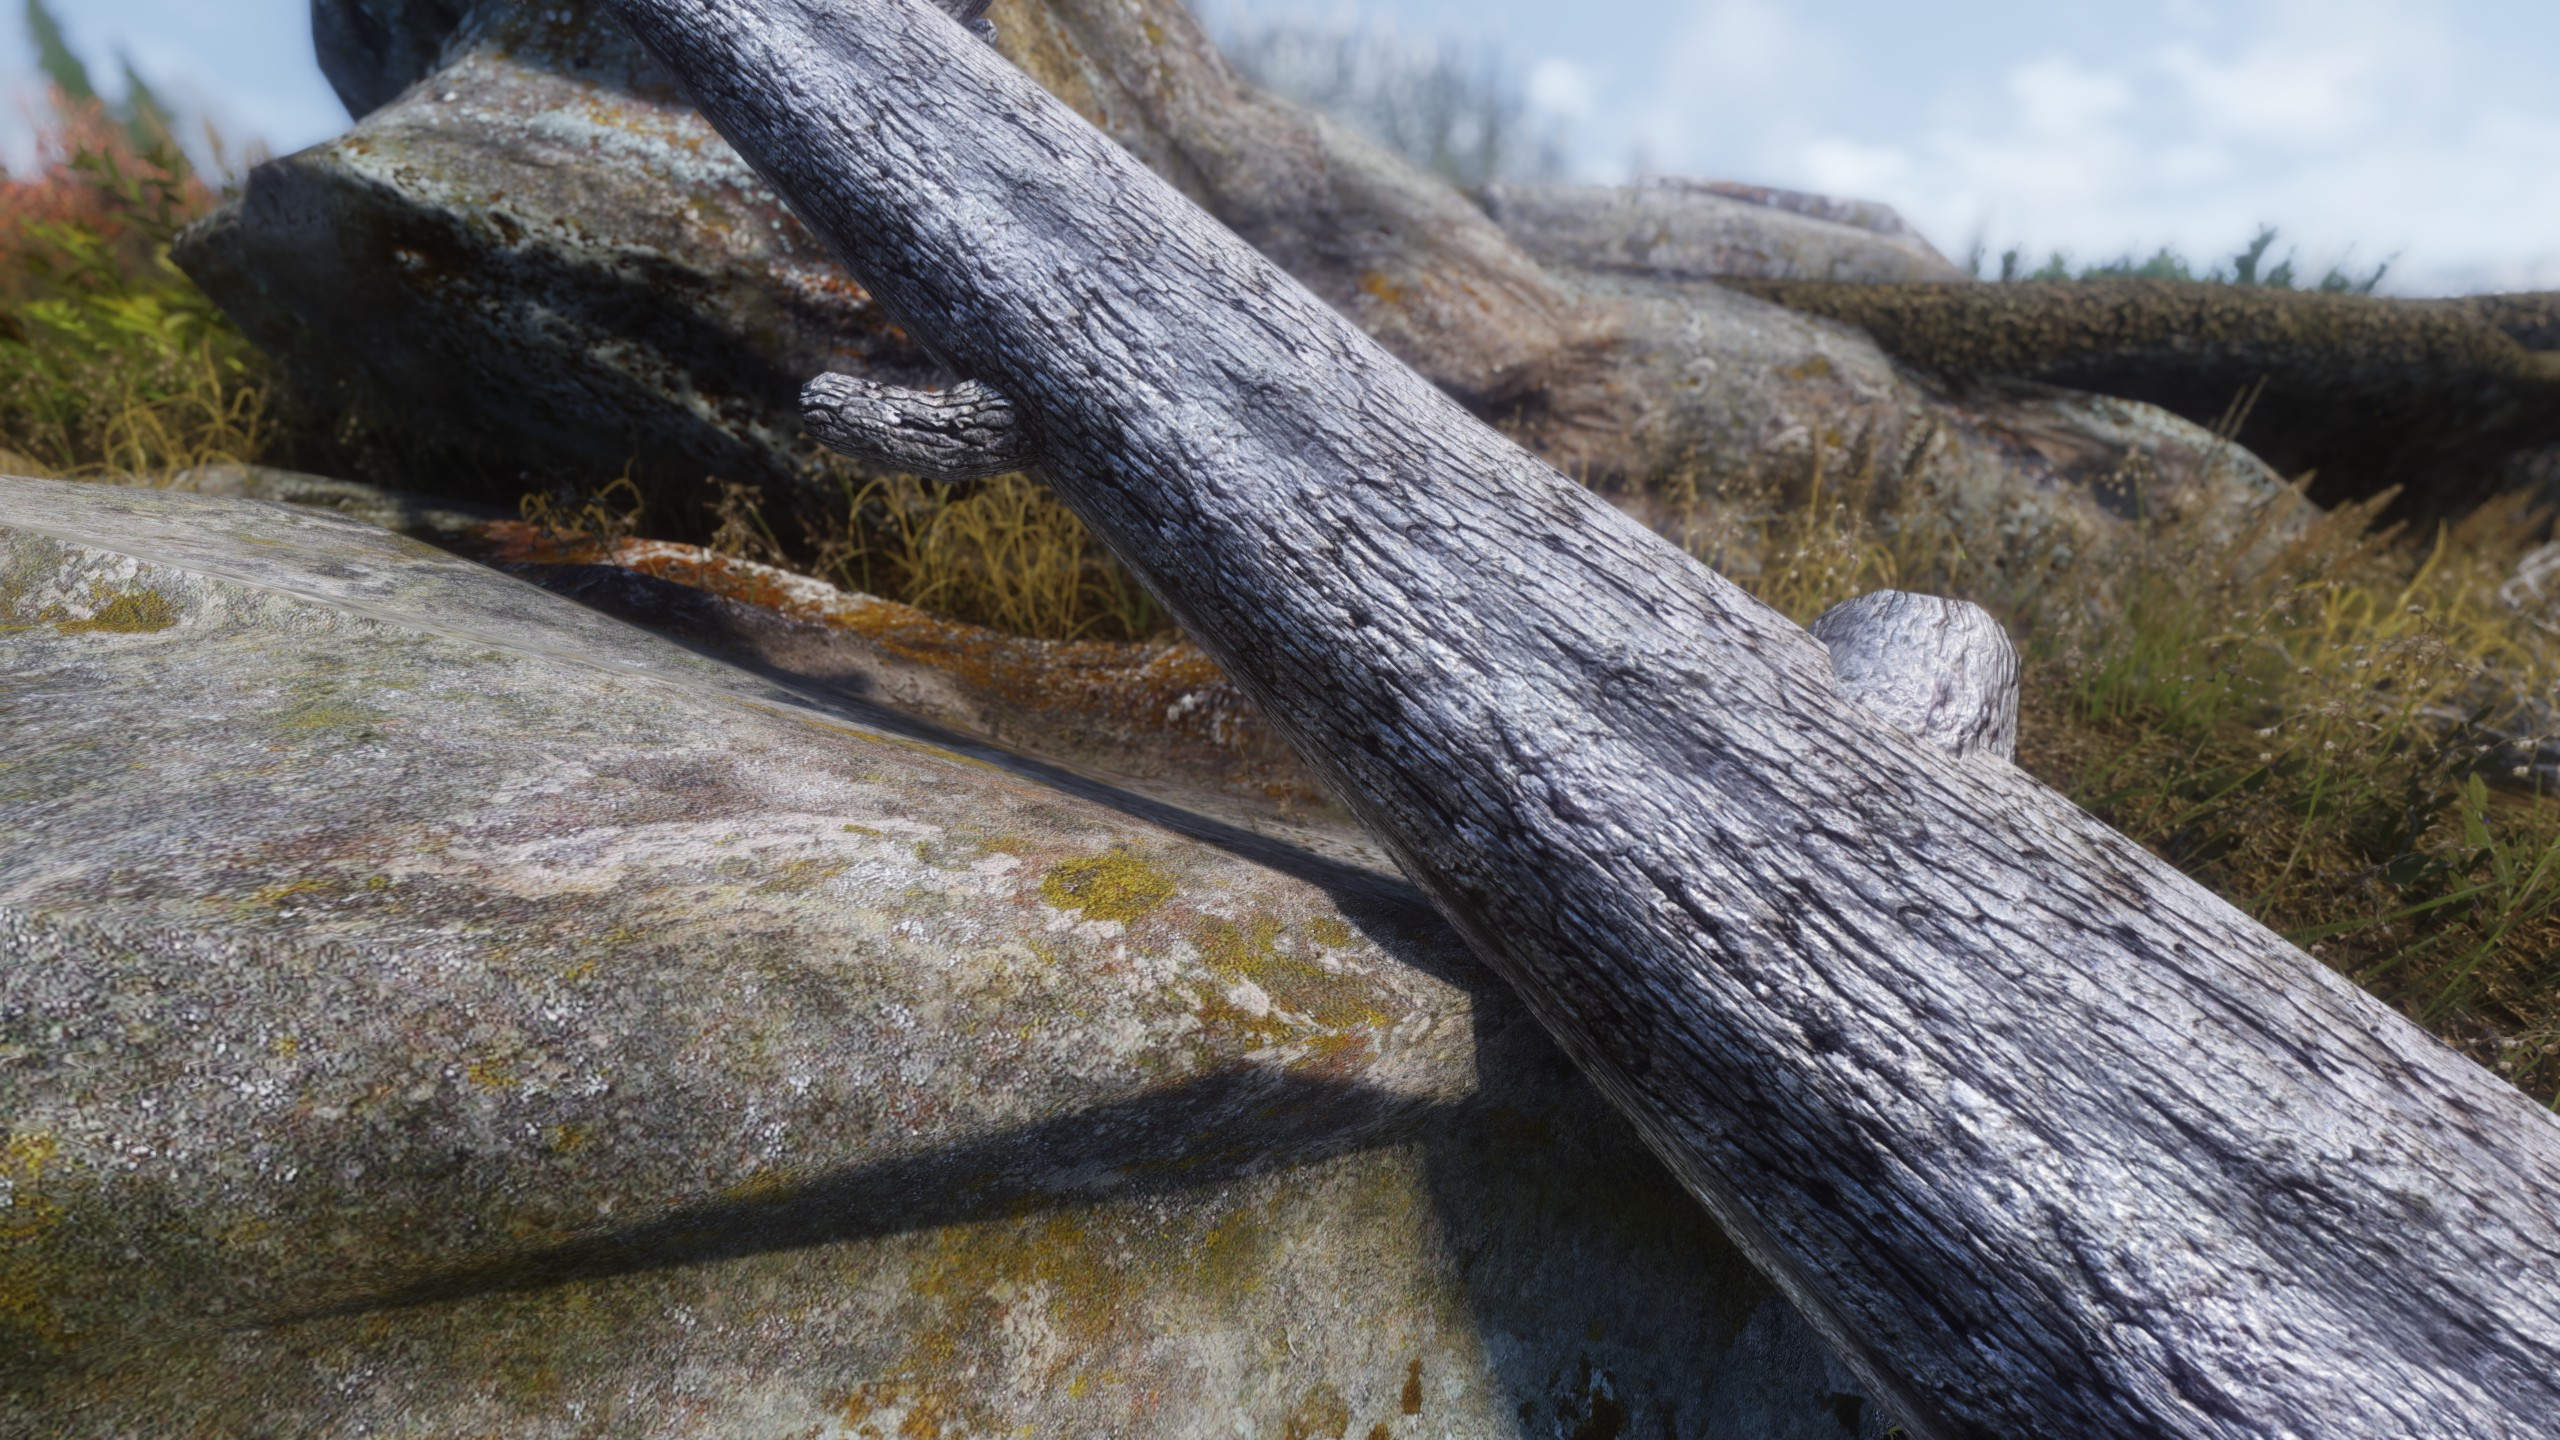 4K rock and tree